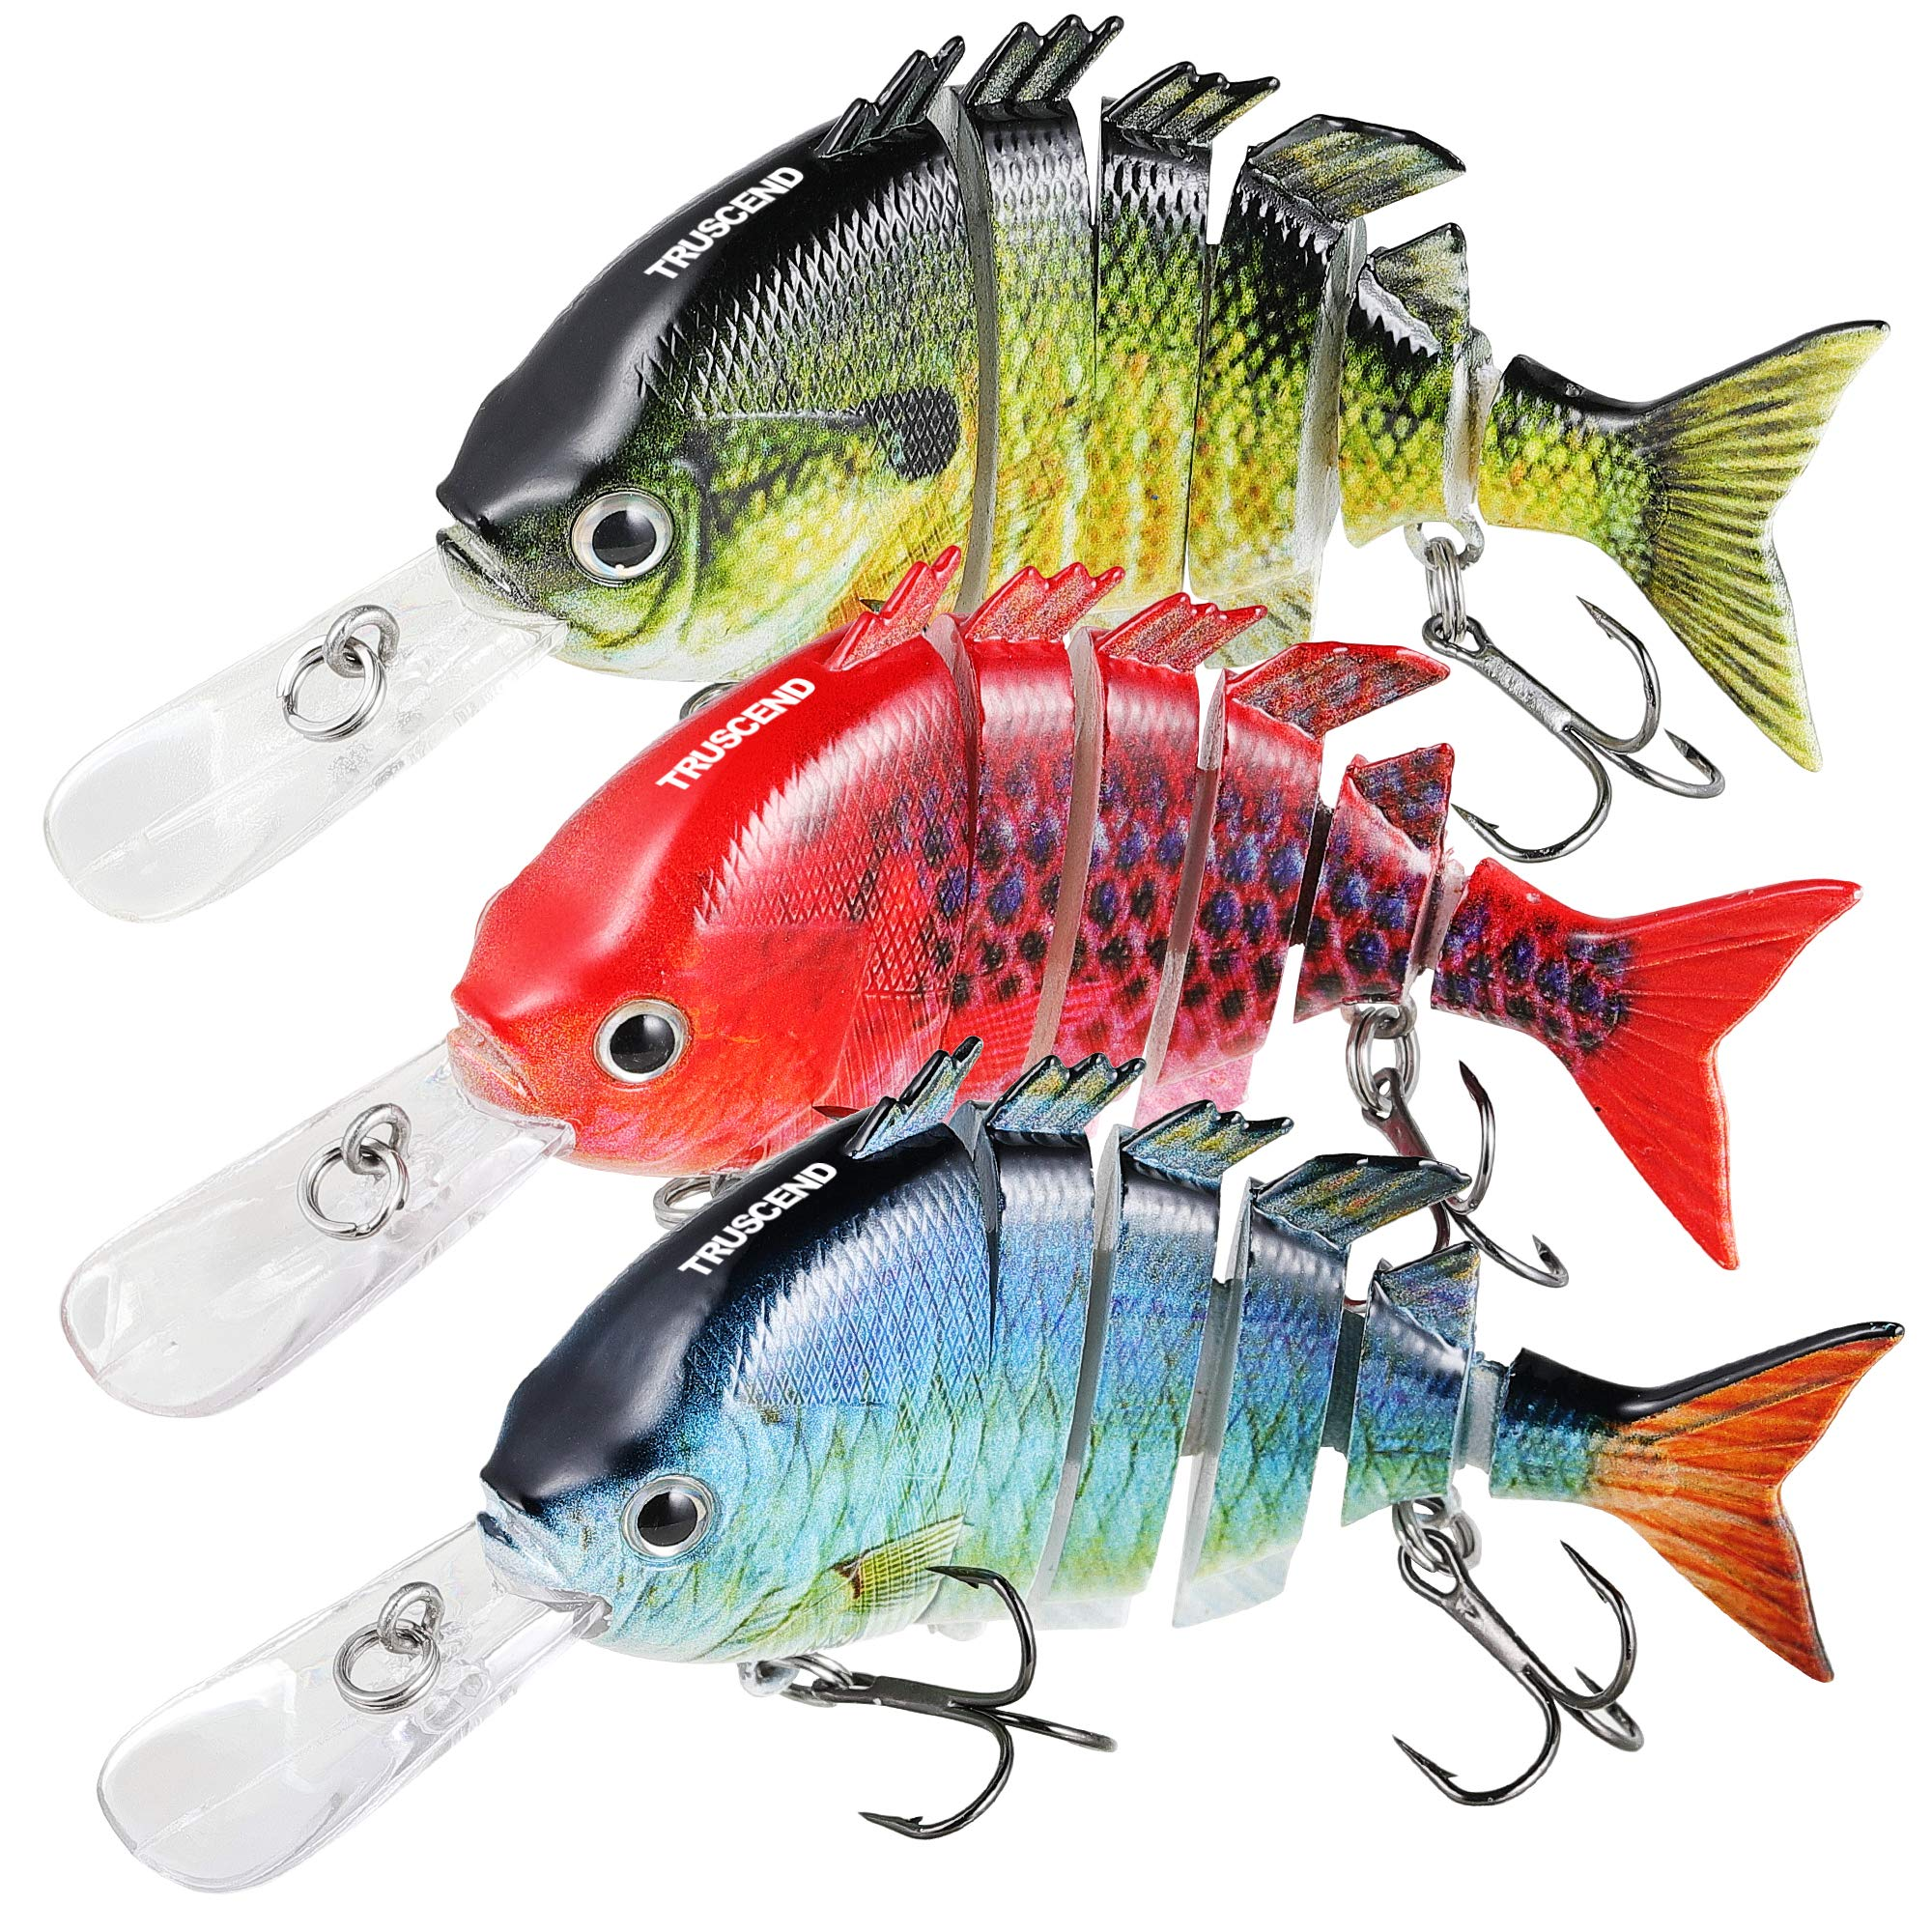 TRUSCEND Fishing Lures for Bass 3.9'' Multi Jointed Swimbaits Slow Sinking Hard Lure Fishing Tackle Kits Lifelike by TRUSCEND